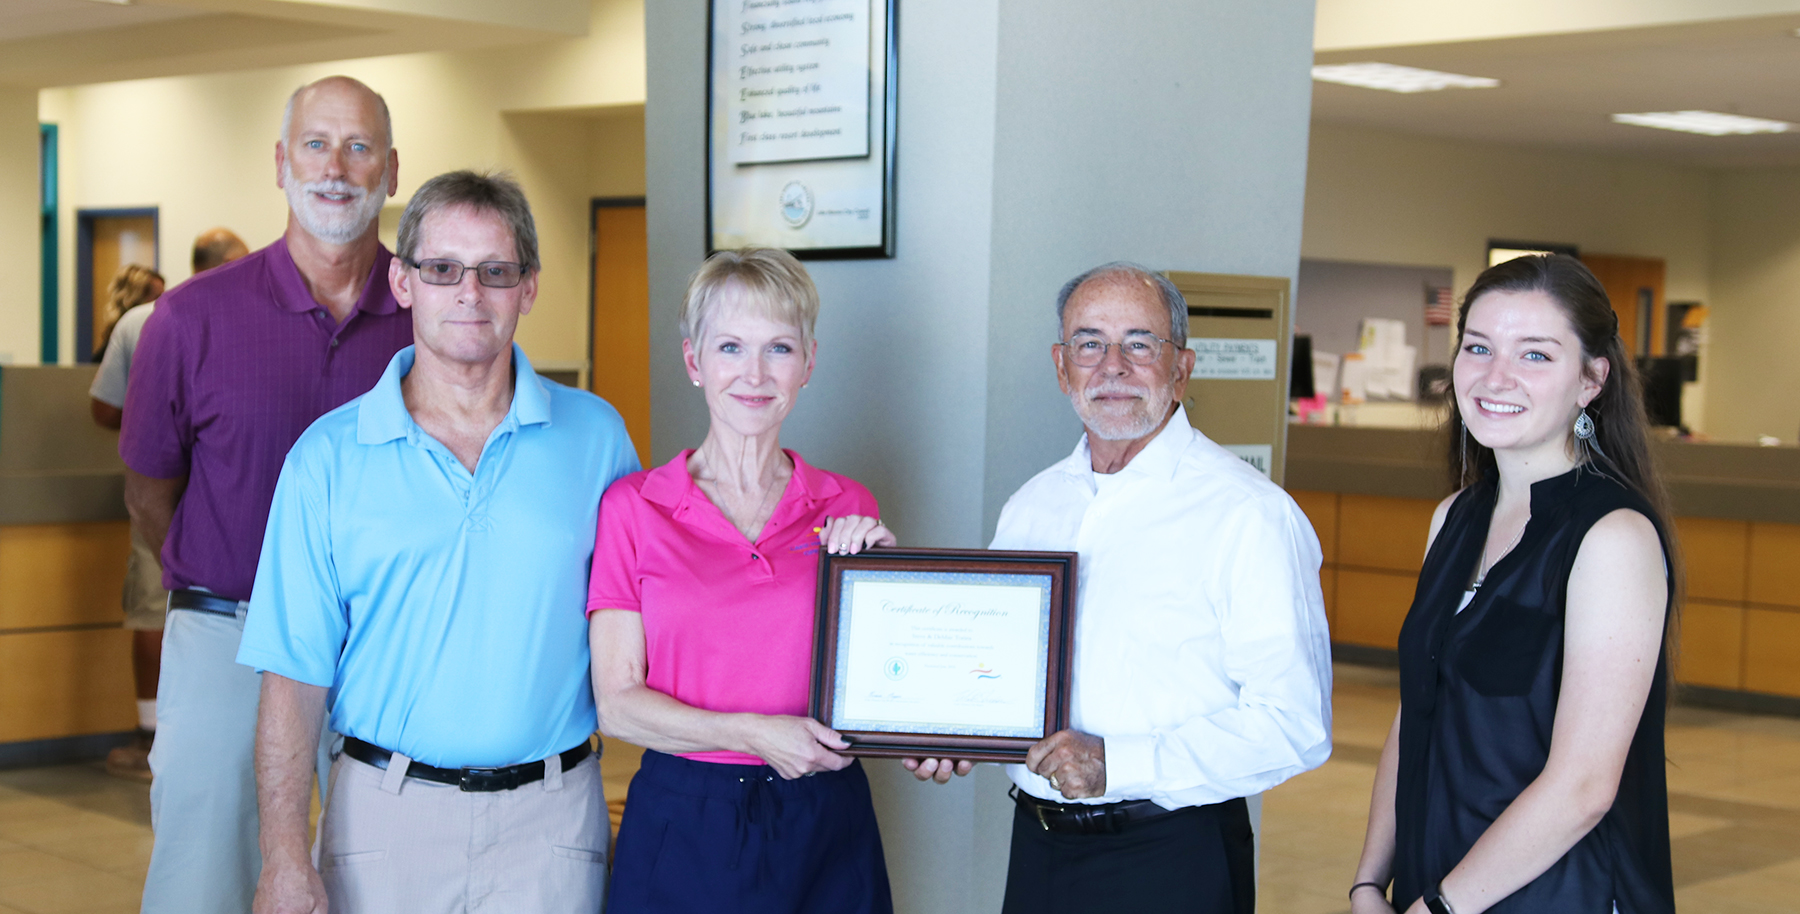 Mayor Recognizes Local Residents For Water Conservation Efforts